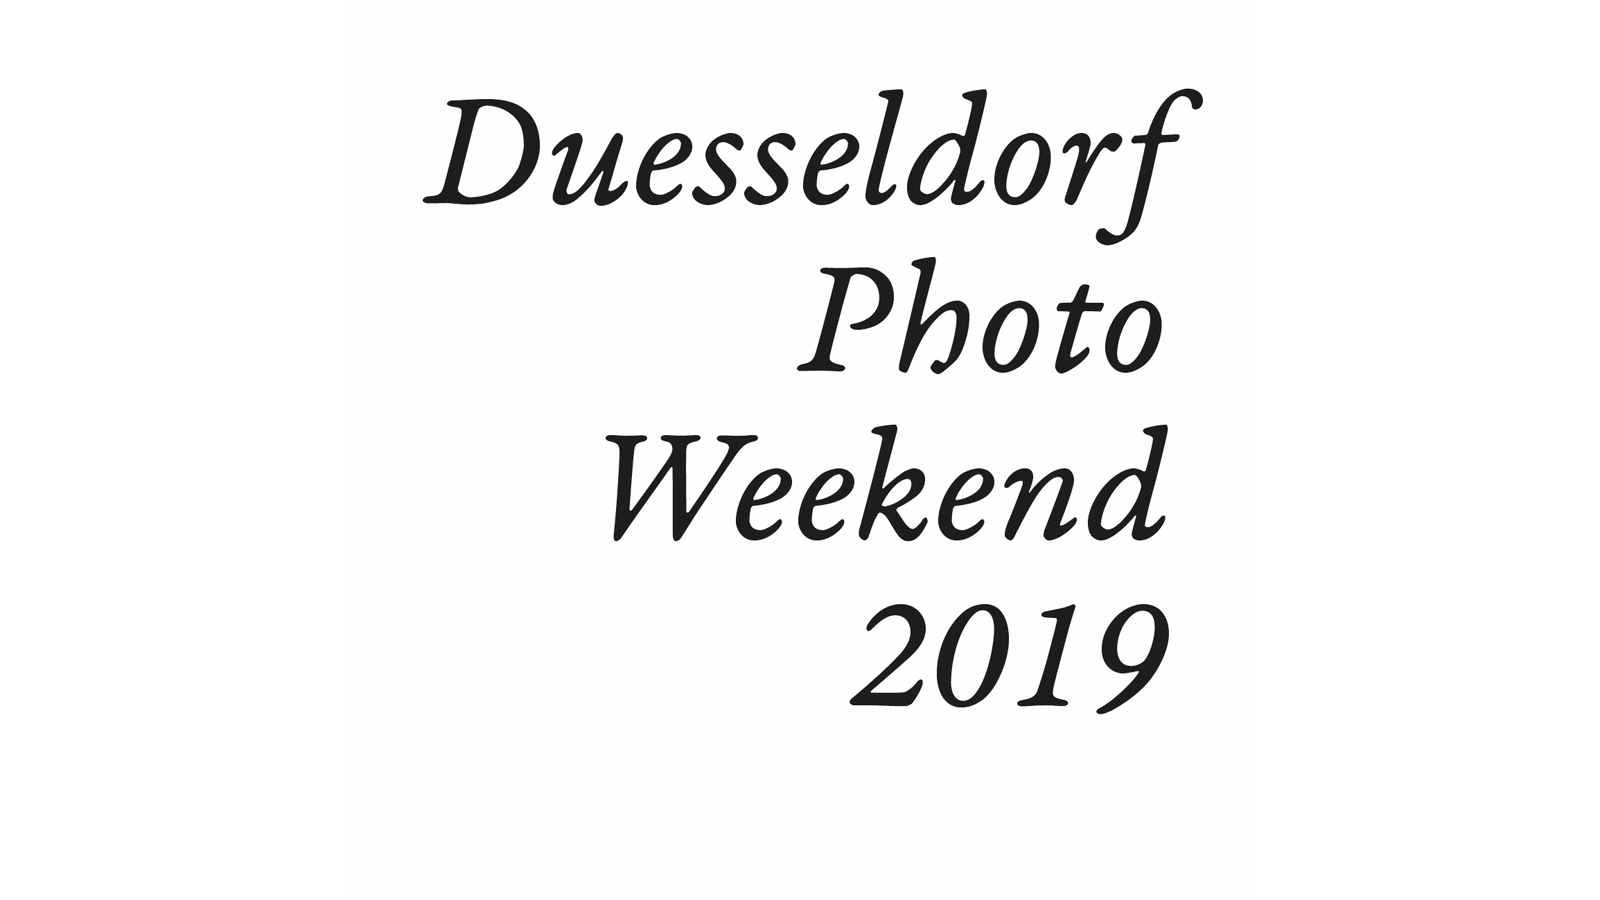 »Duesseldorf Photo Weekend 2019« March 8 — 10